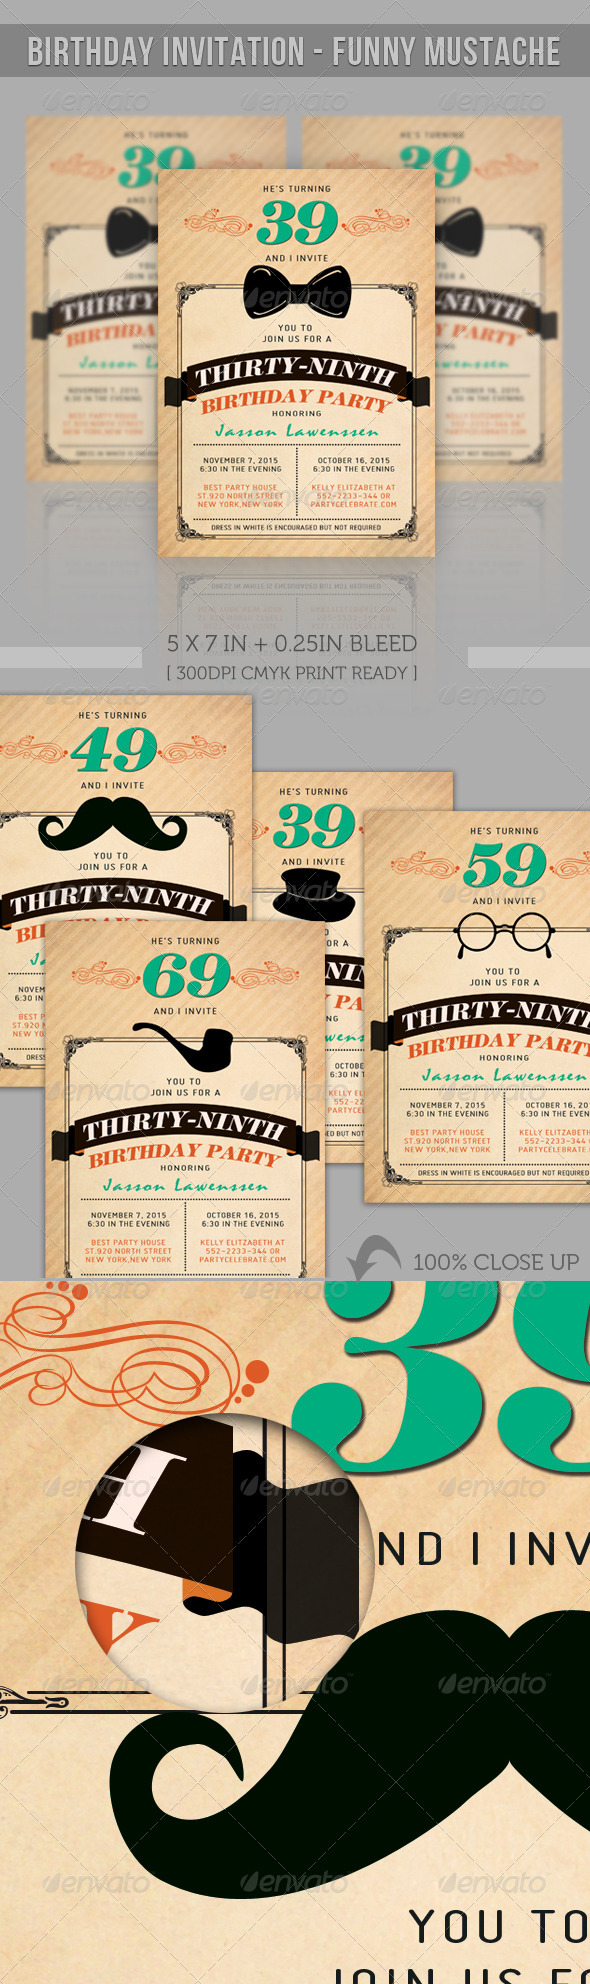 Birthday Greeting Card - Funny Mustache - Birthday Greeting Cards